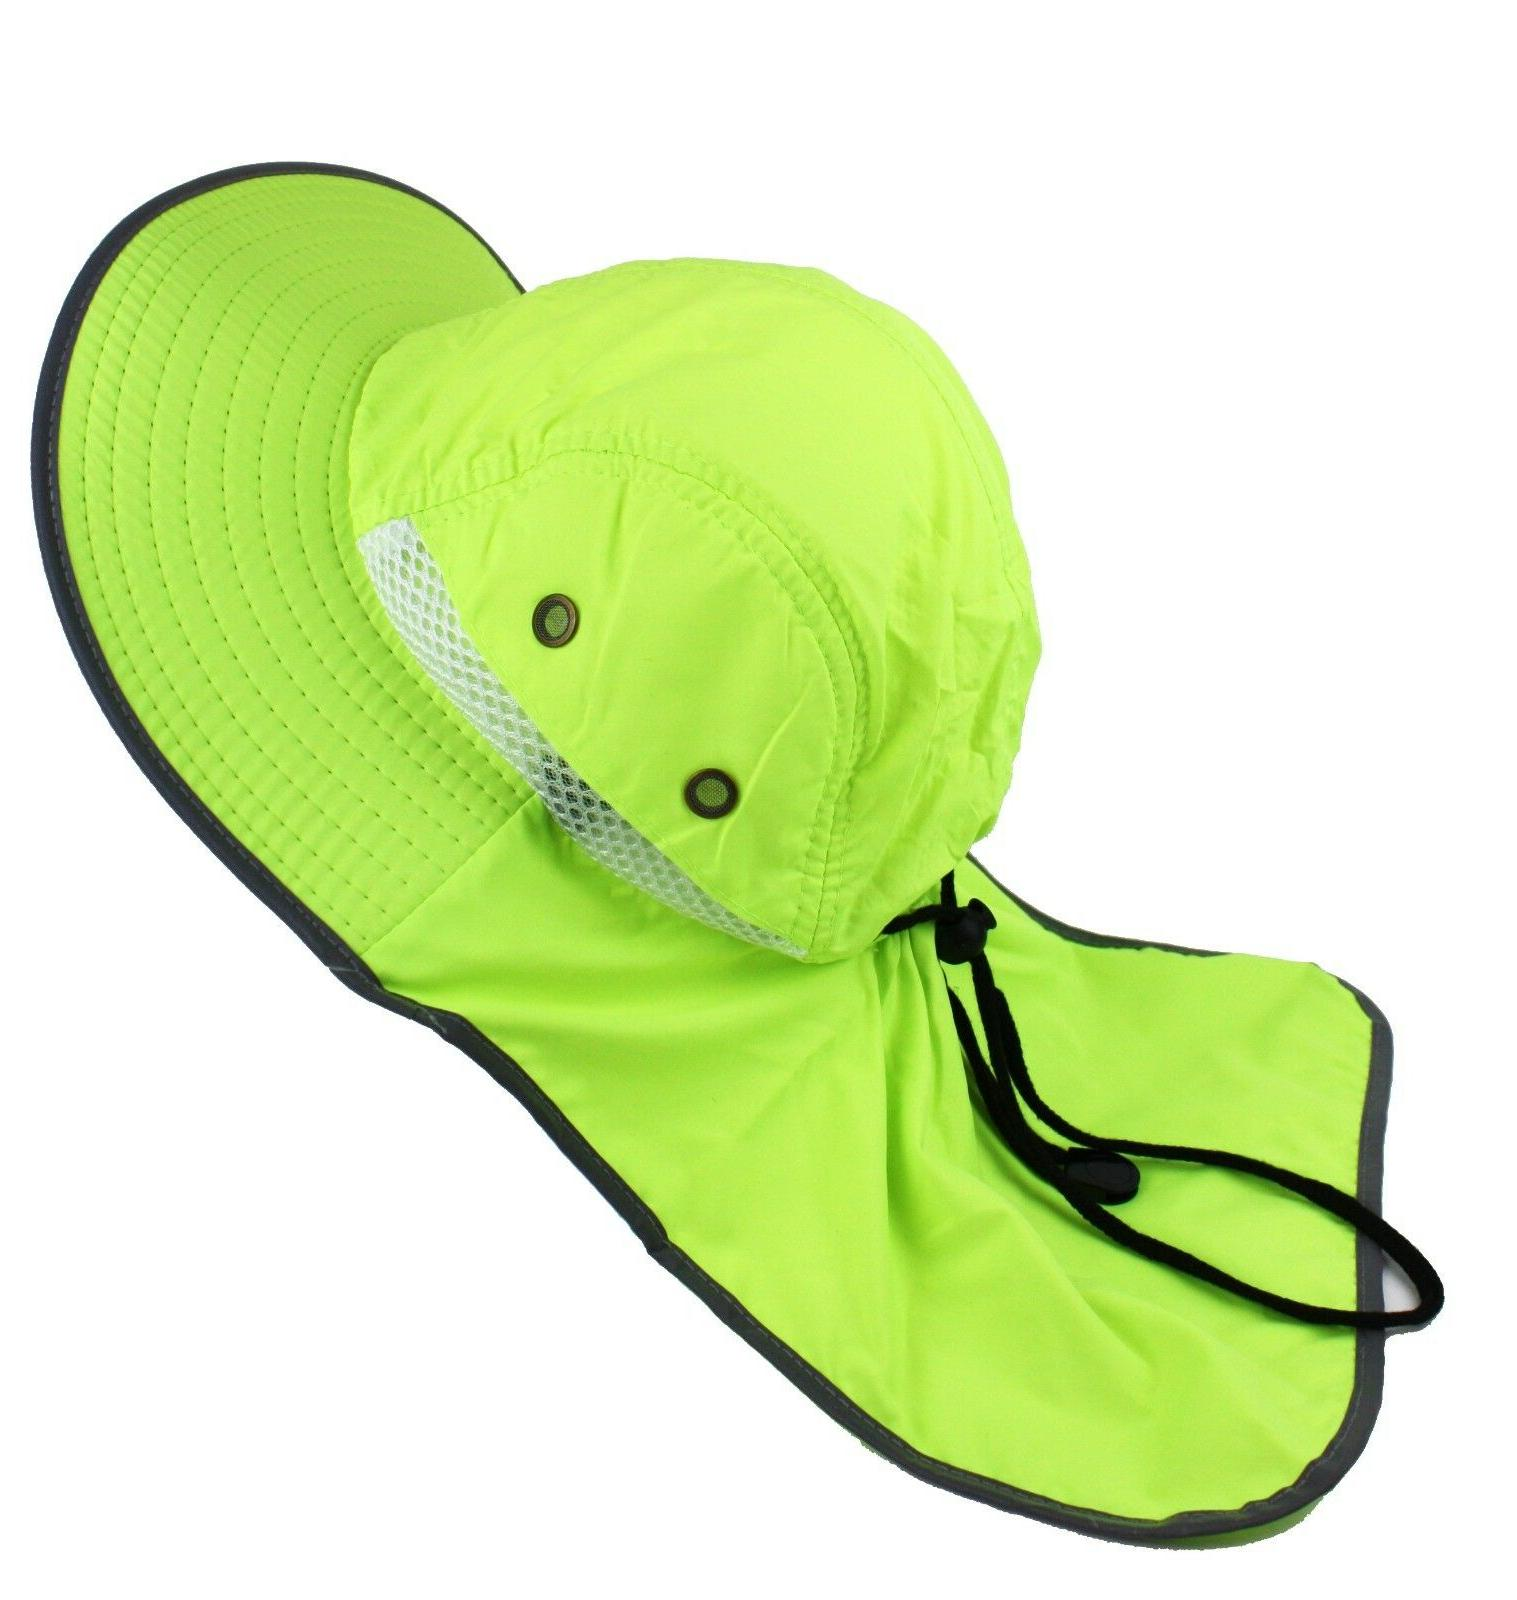 Boonie Hat Neck High Visibility Waterproof Cap Men